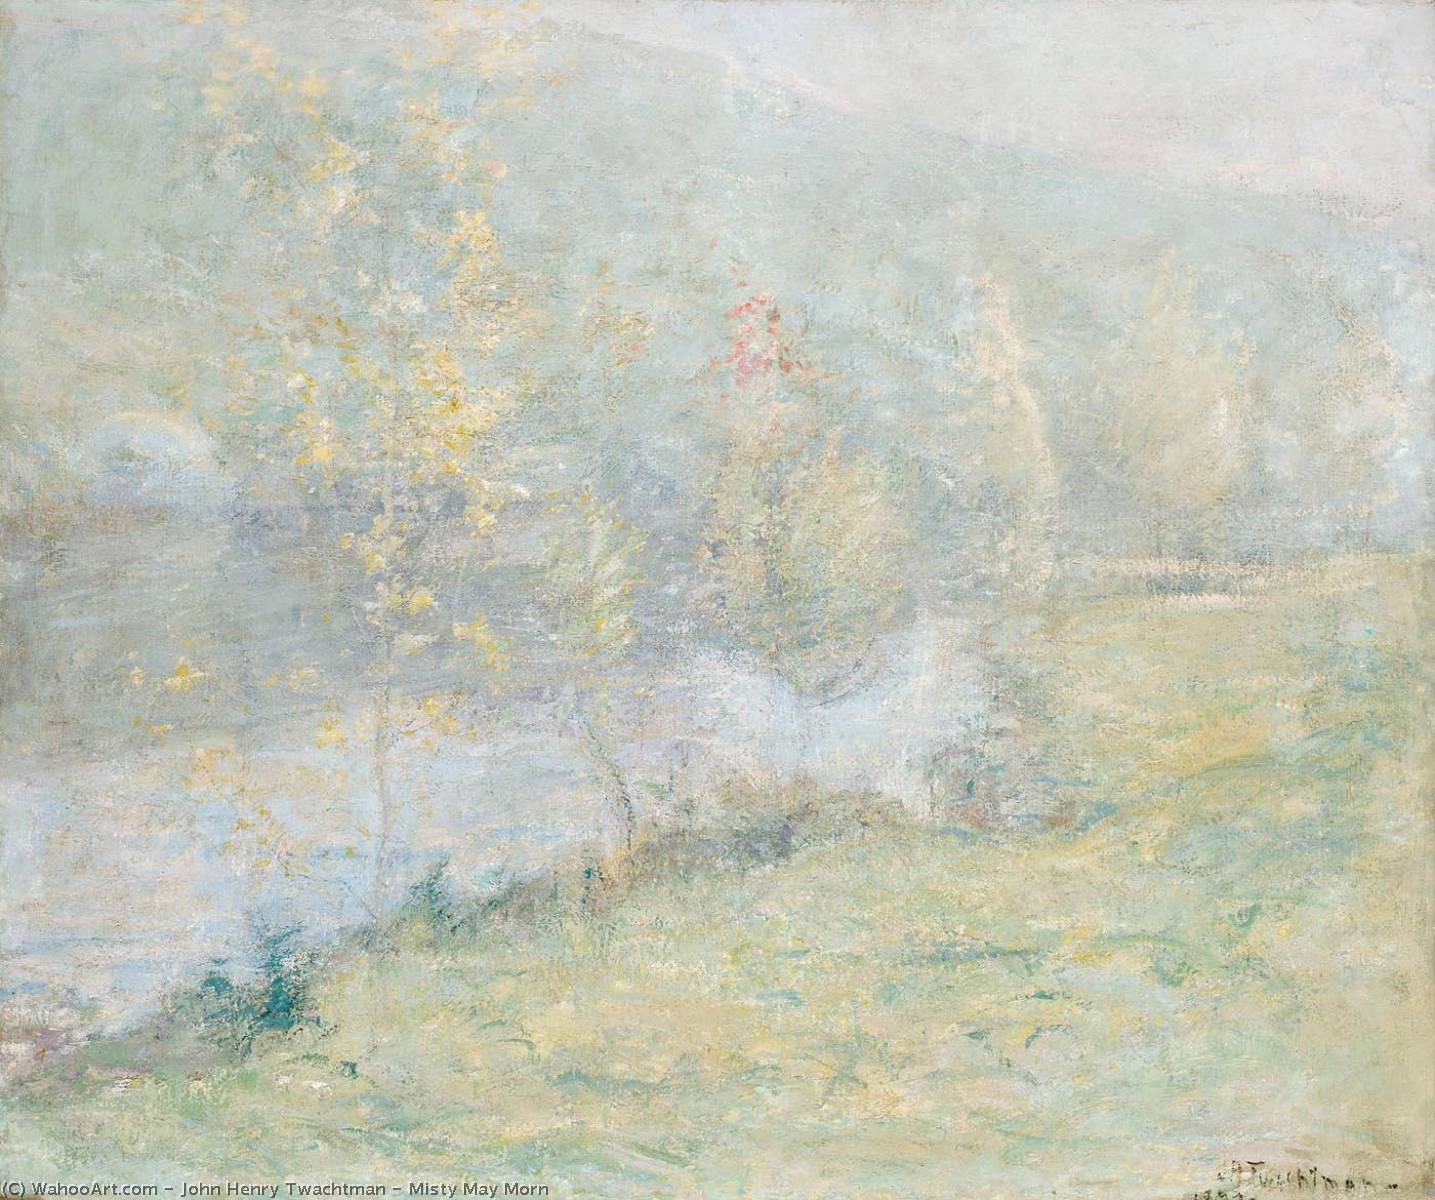 famous painting Misty May Morn of John Henry Twachtman